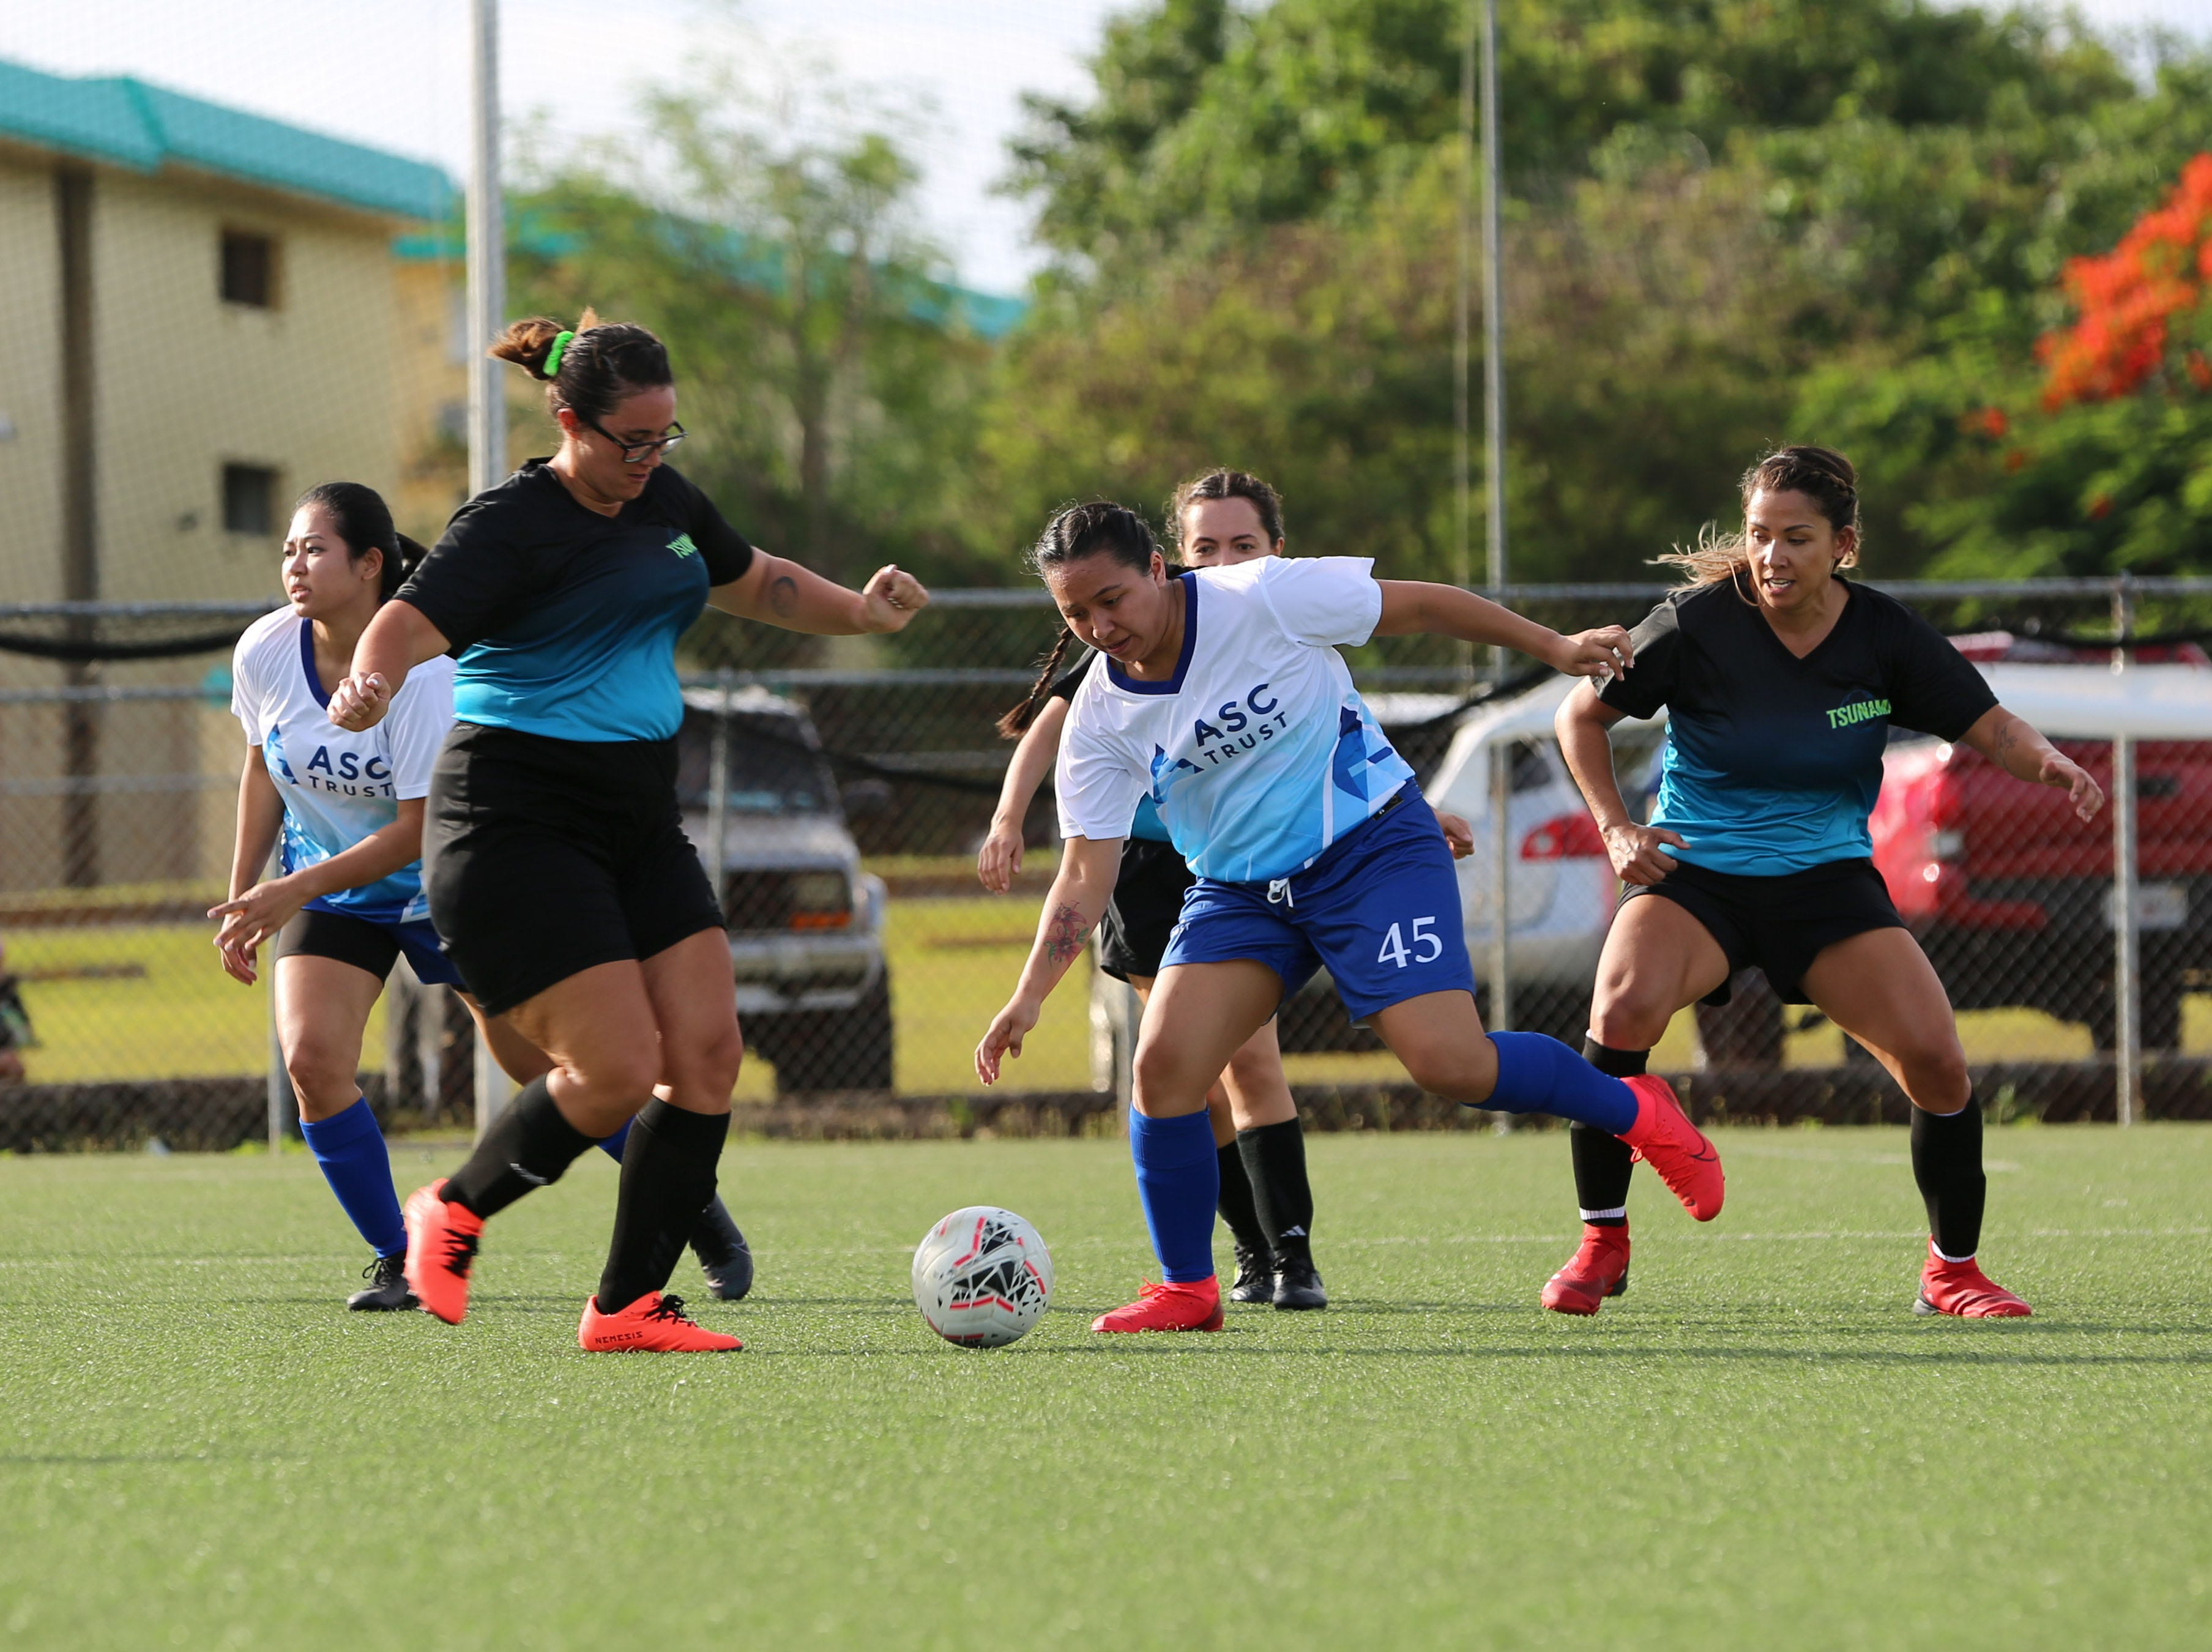 The ASC Kickers and Tsunami play in an opening day match of the Guam Football Association Women's Recreational League Sunday at the Guam Football Association National Training Center.